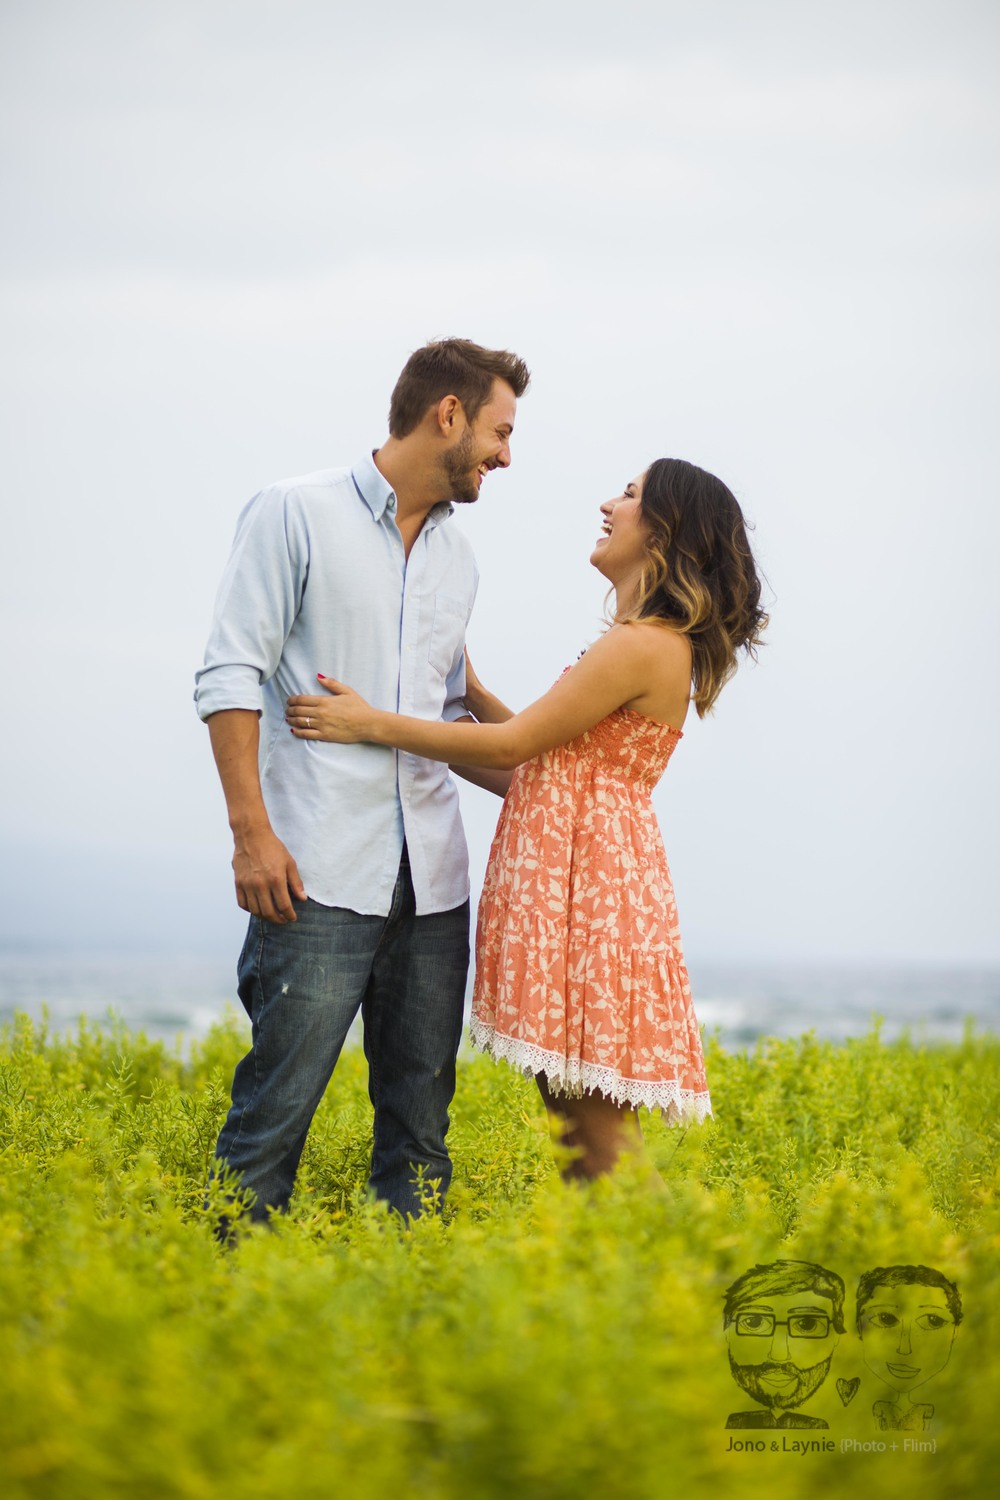 Jono & Laynie Co.-Kona, Hawaii-Engagement Session06.jpg